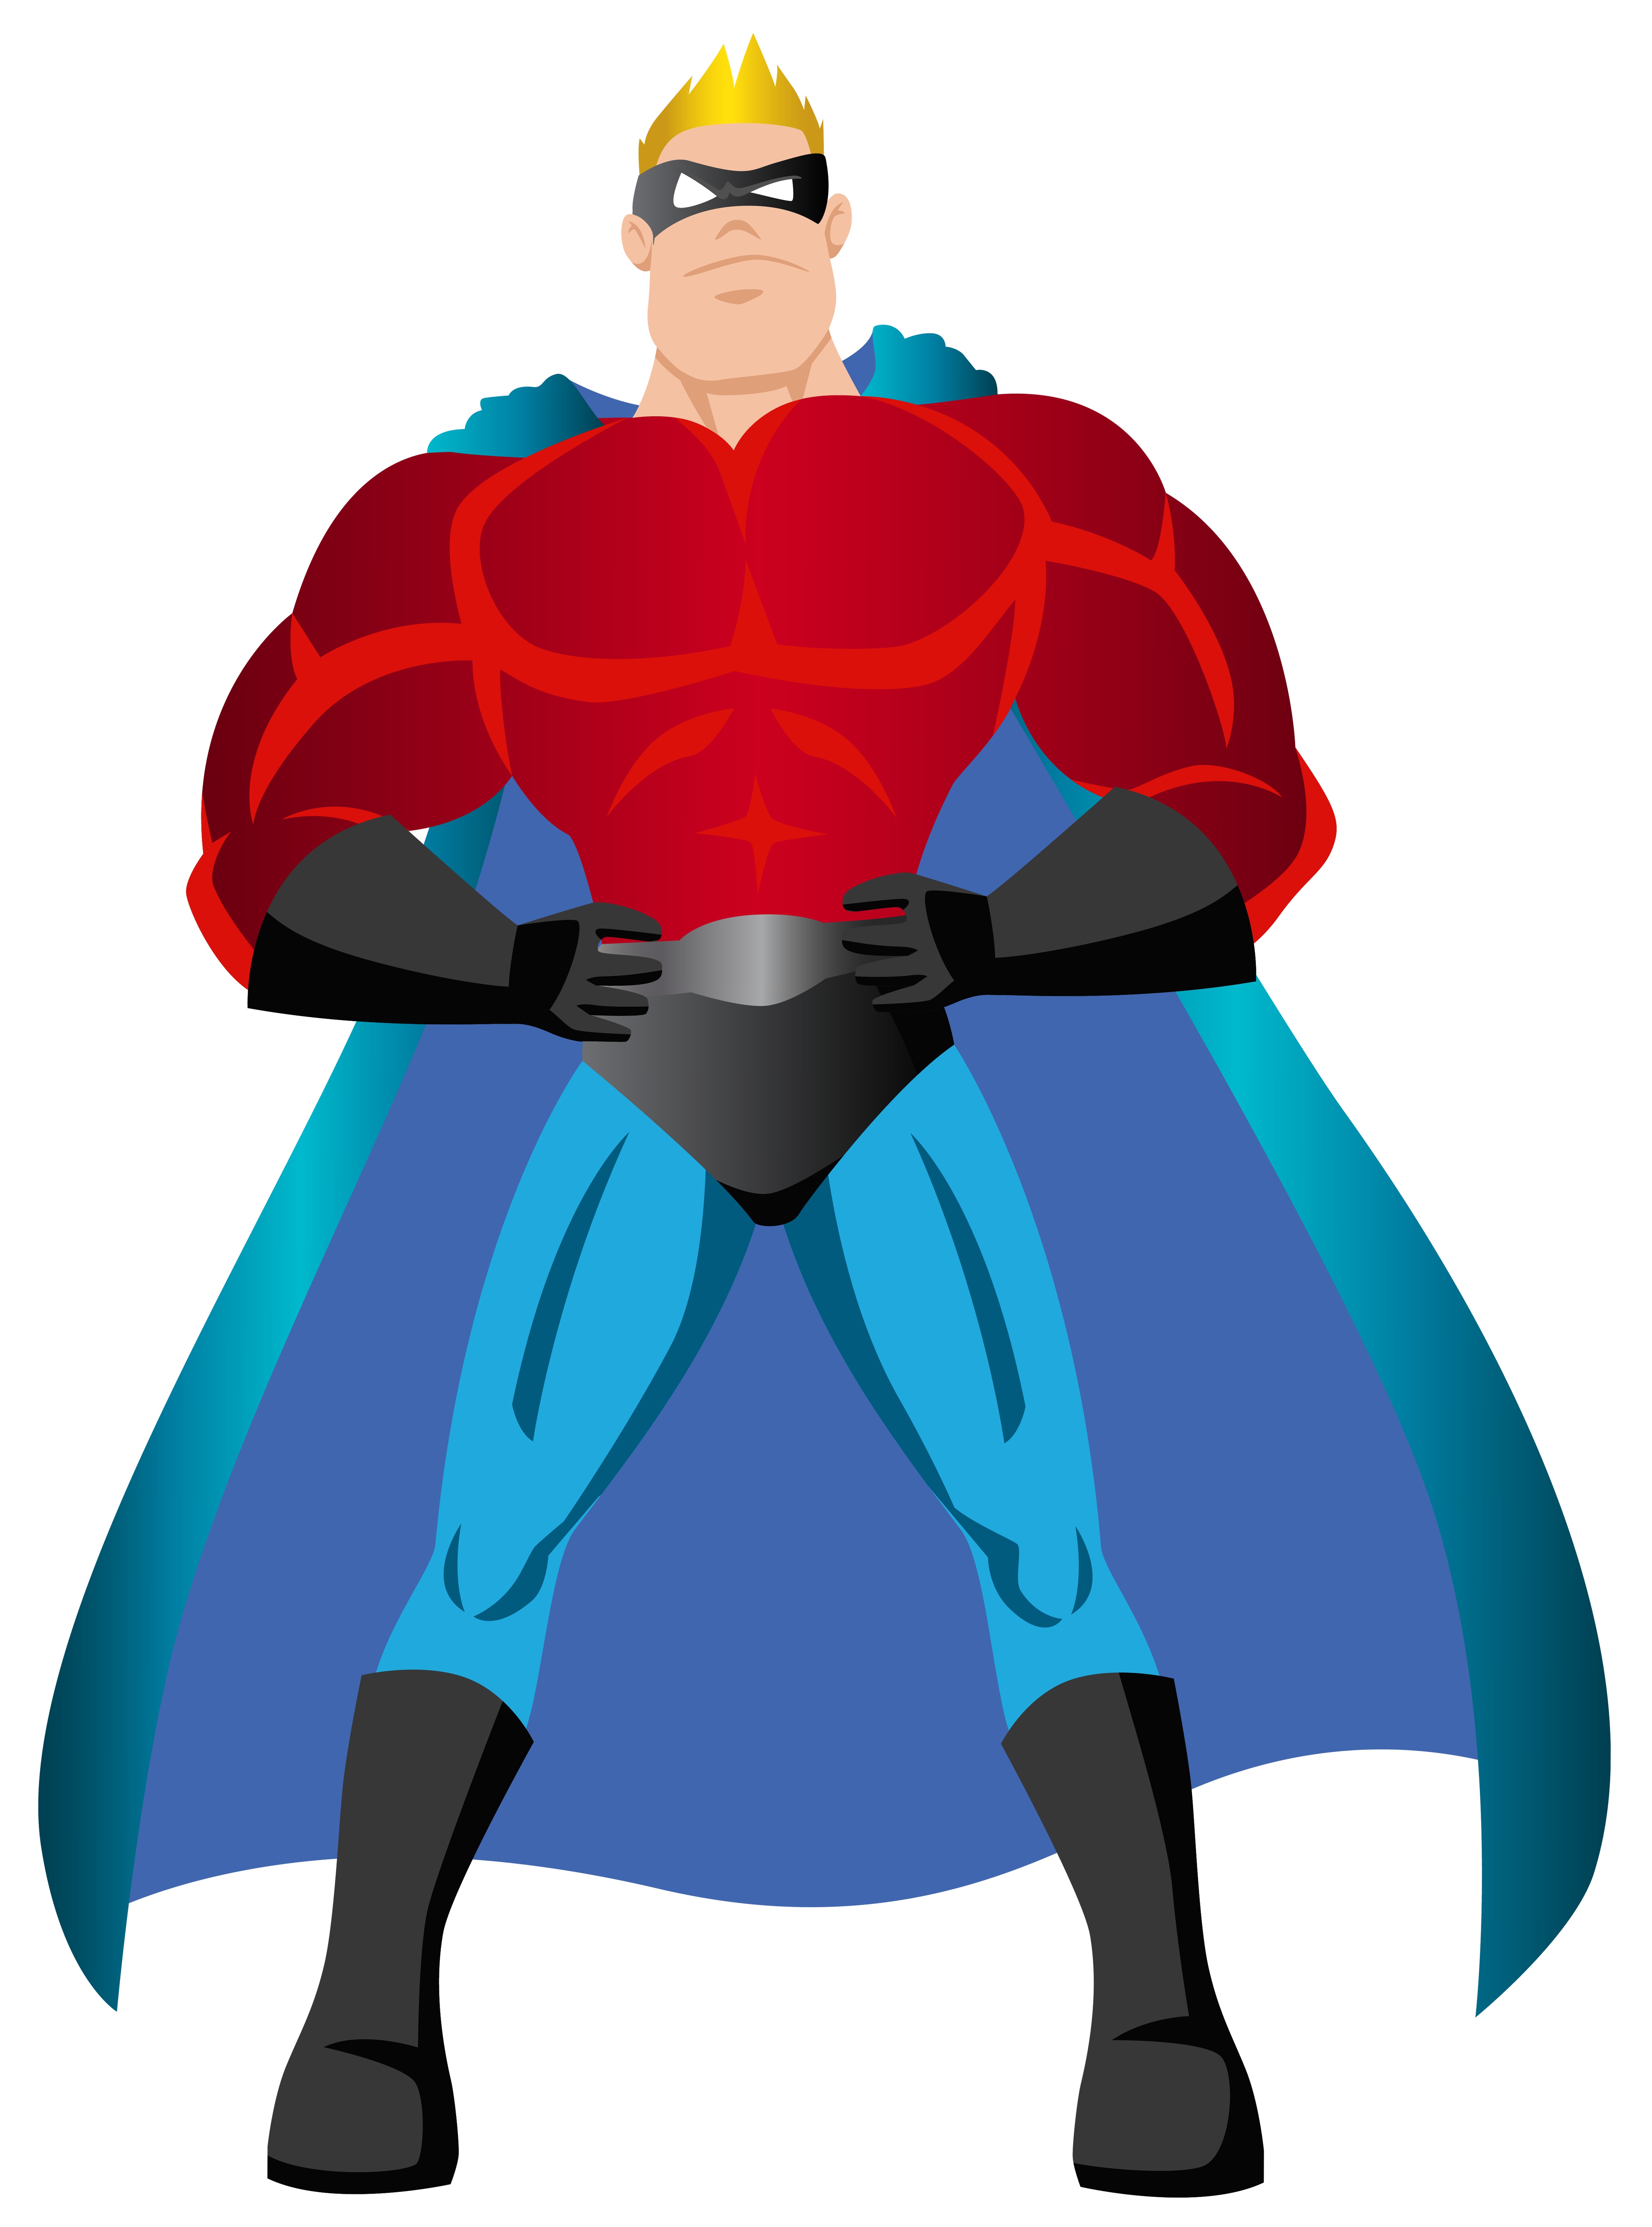 Vacation bible school party. Superheroes clipart super hero picture royalty free